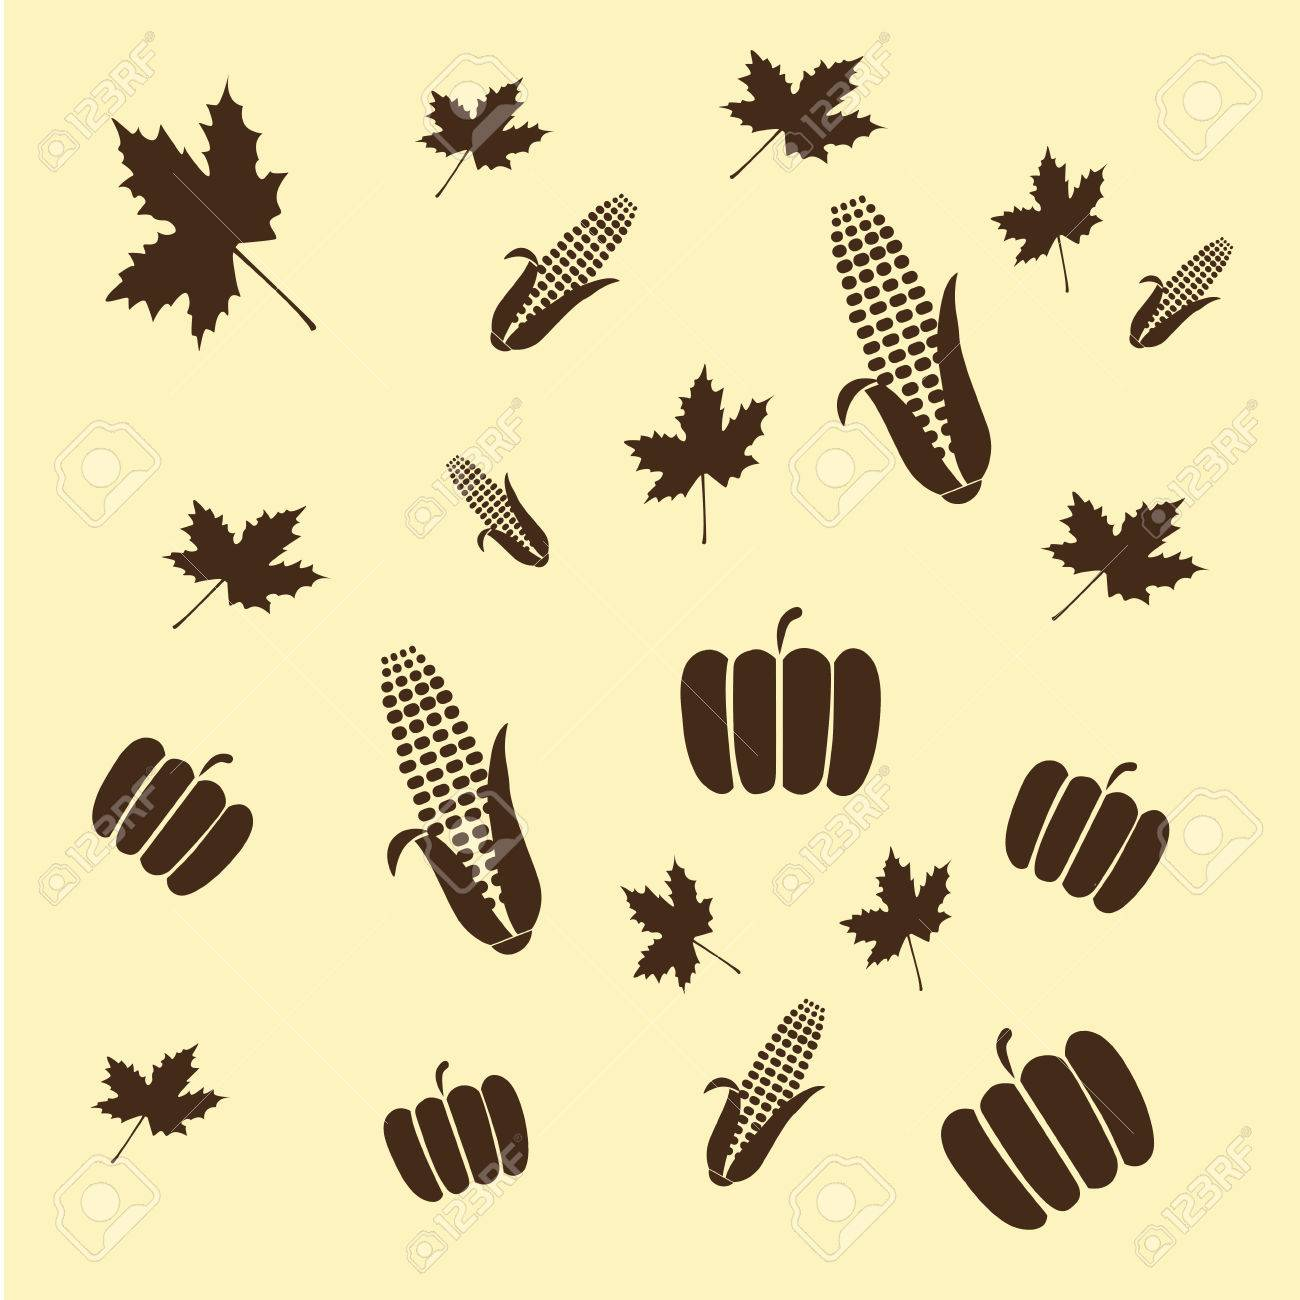 a lot of black silhouettes of pumpkins, corns and leaves for thanksgiving - 23976553